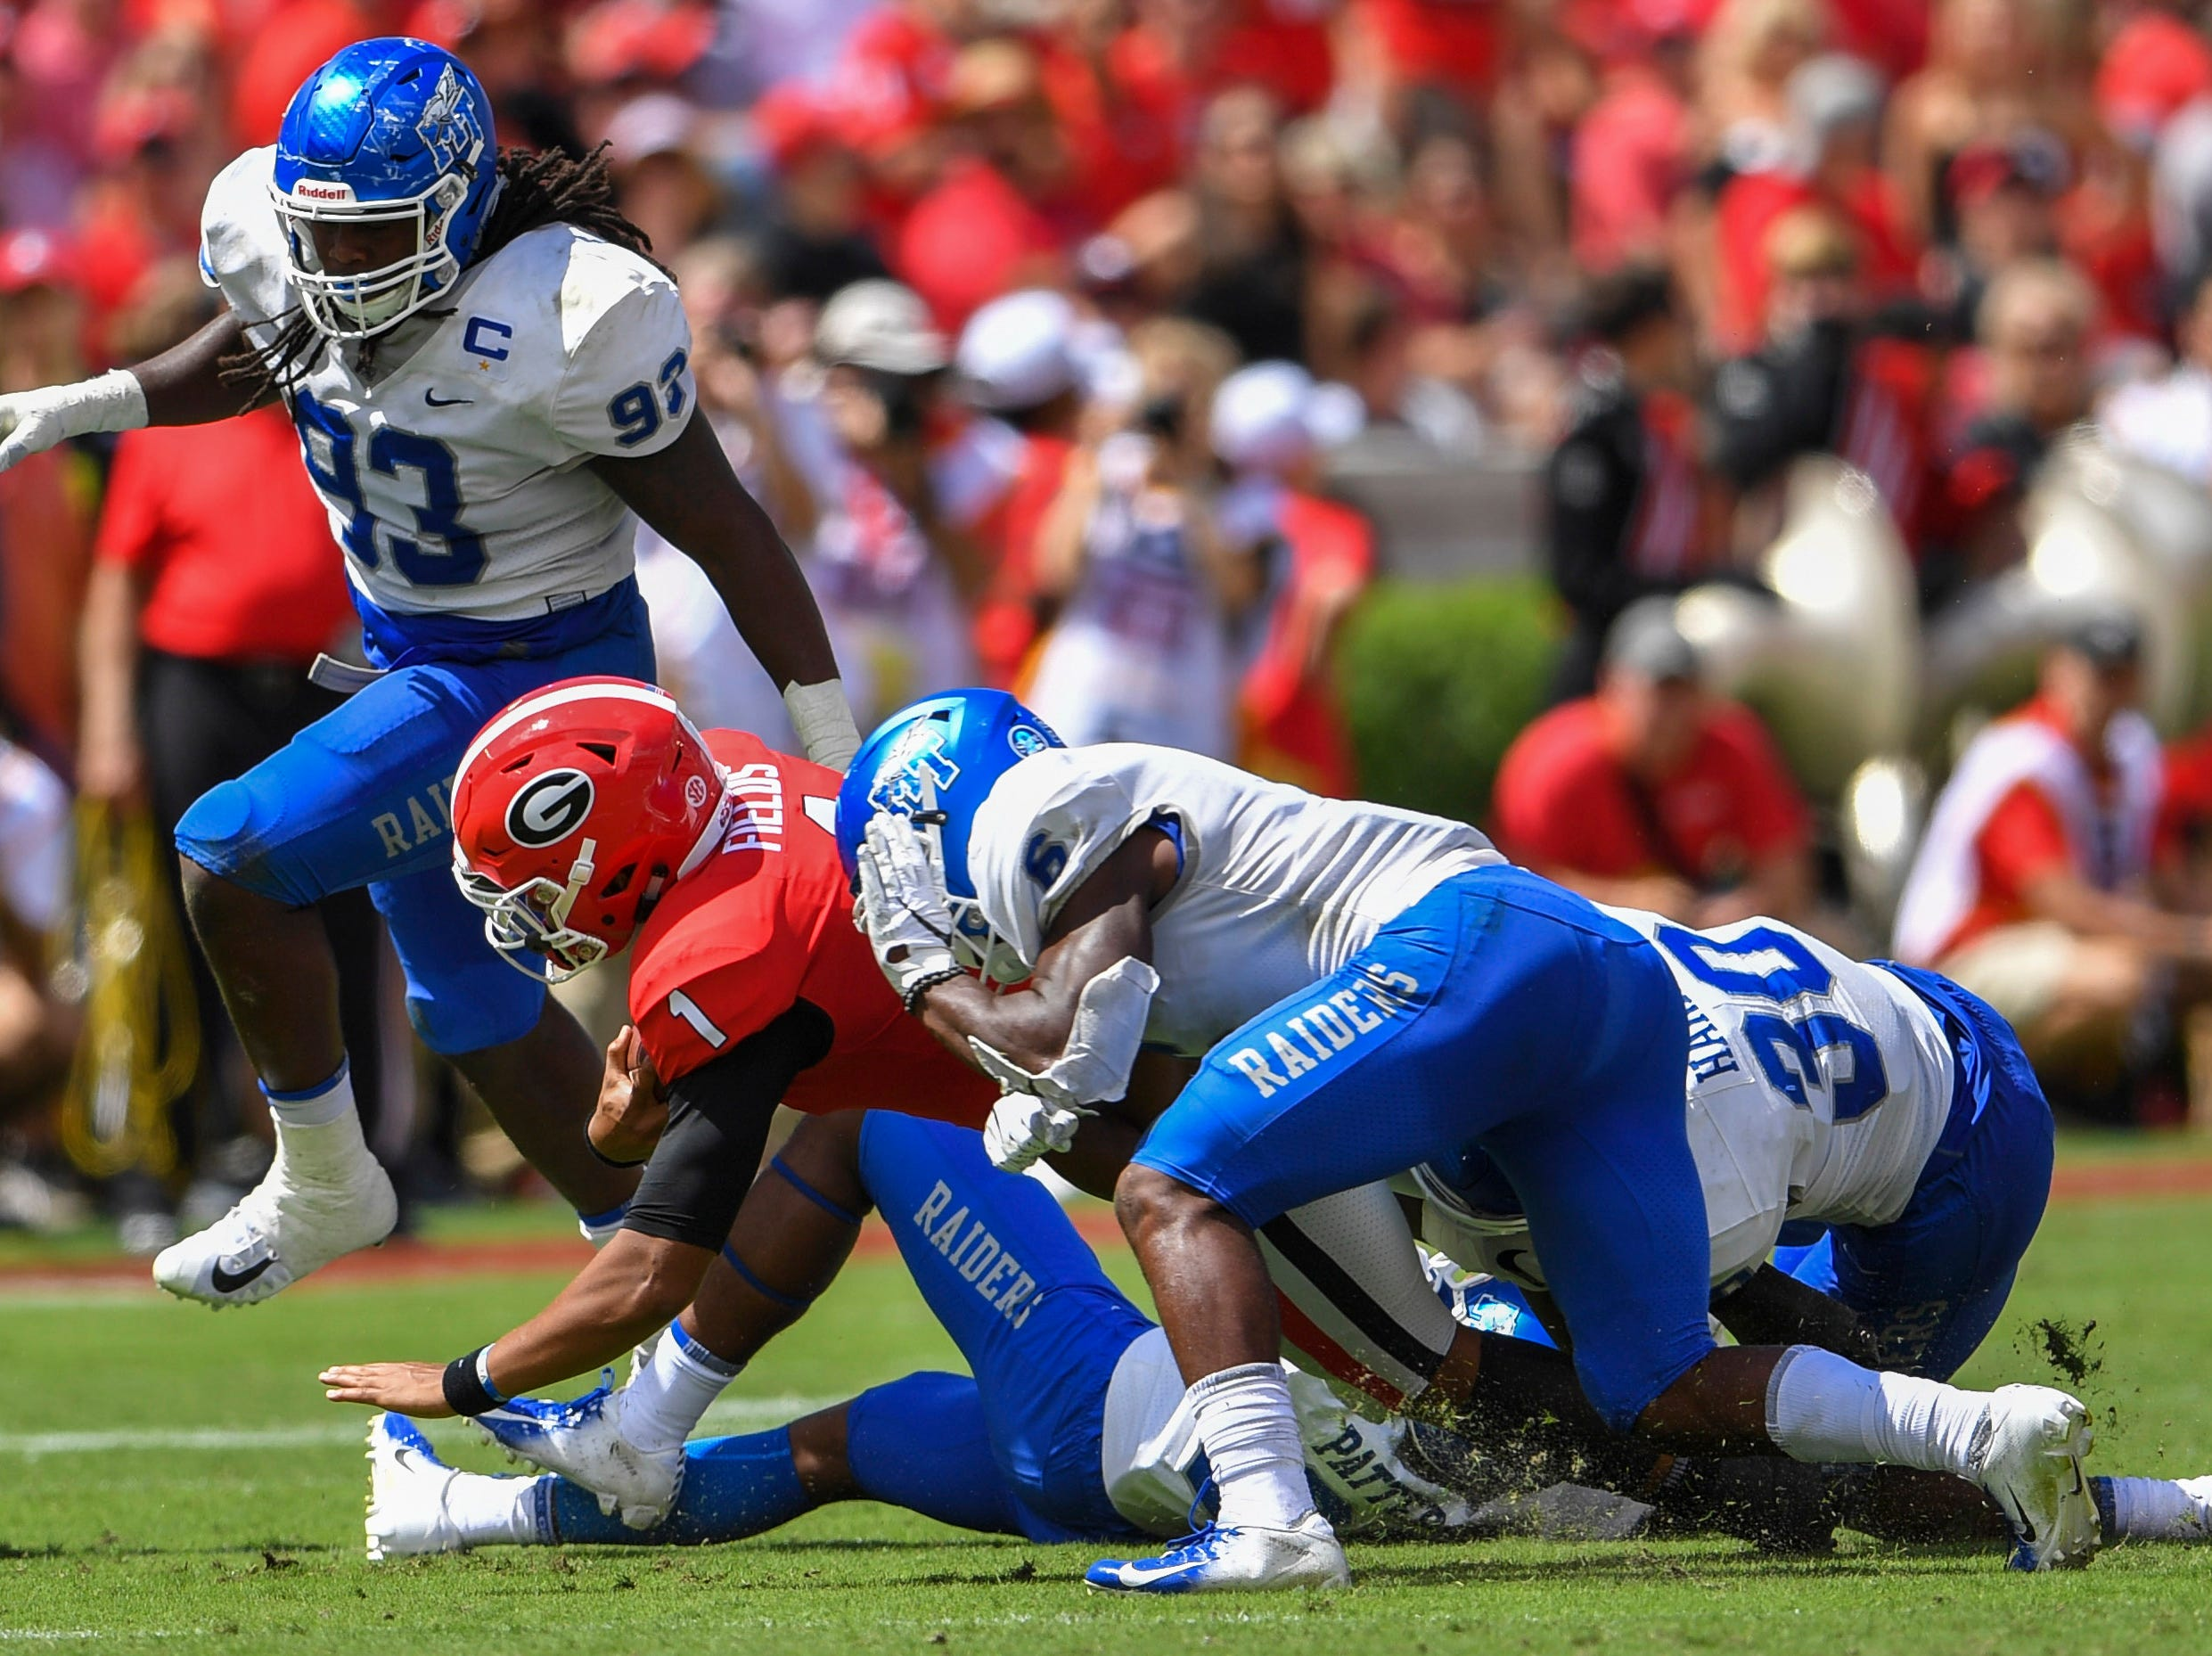 Sep 15, 2018; Athens, GA, USA; Middle Tennessee Blue Raiders linebacker Khalil Brooks (6) hits Georgia Bulldogs quarterback Justin Fields (1) with his helmet resulting in a targeting penalty during the first half at Sanford Stadium. Mandatory Credit: Dale Zanine-USA TODAY Sports